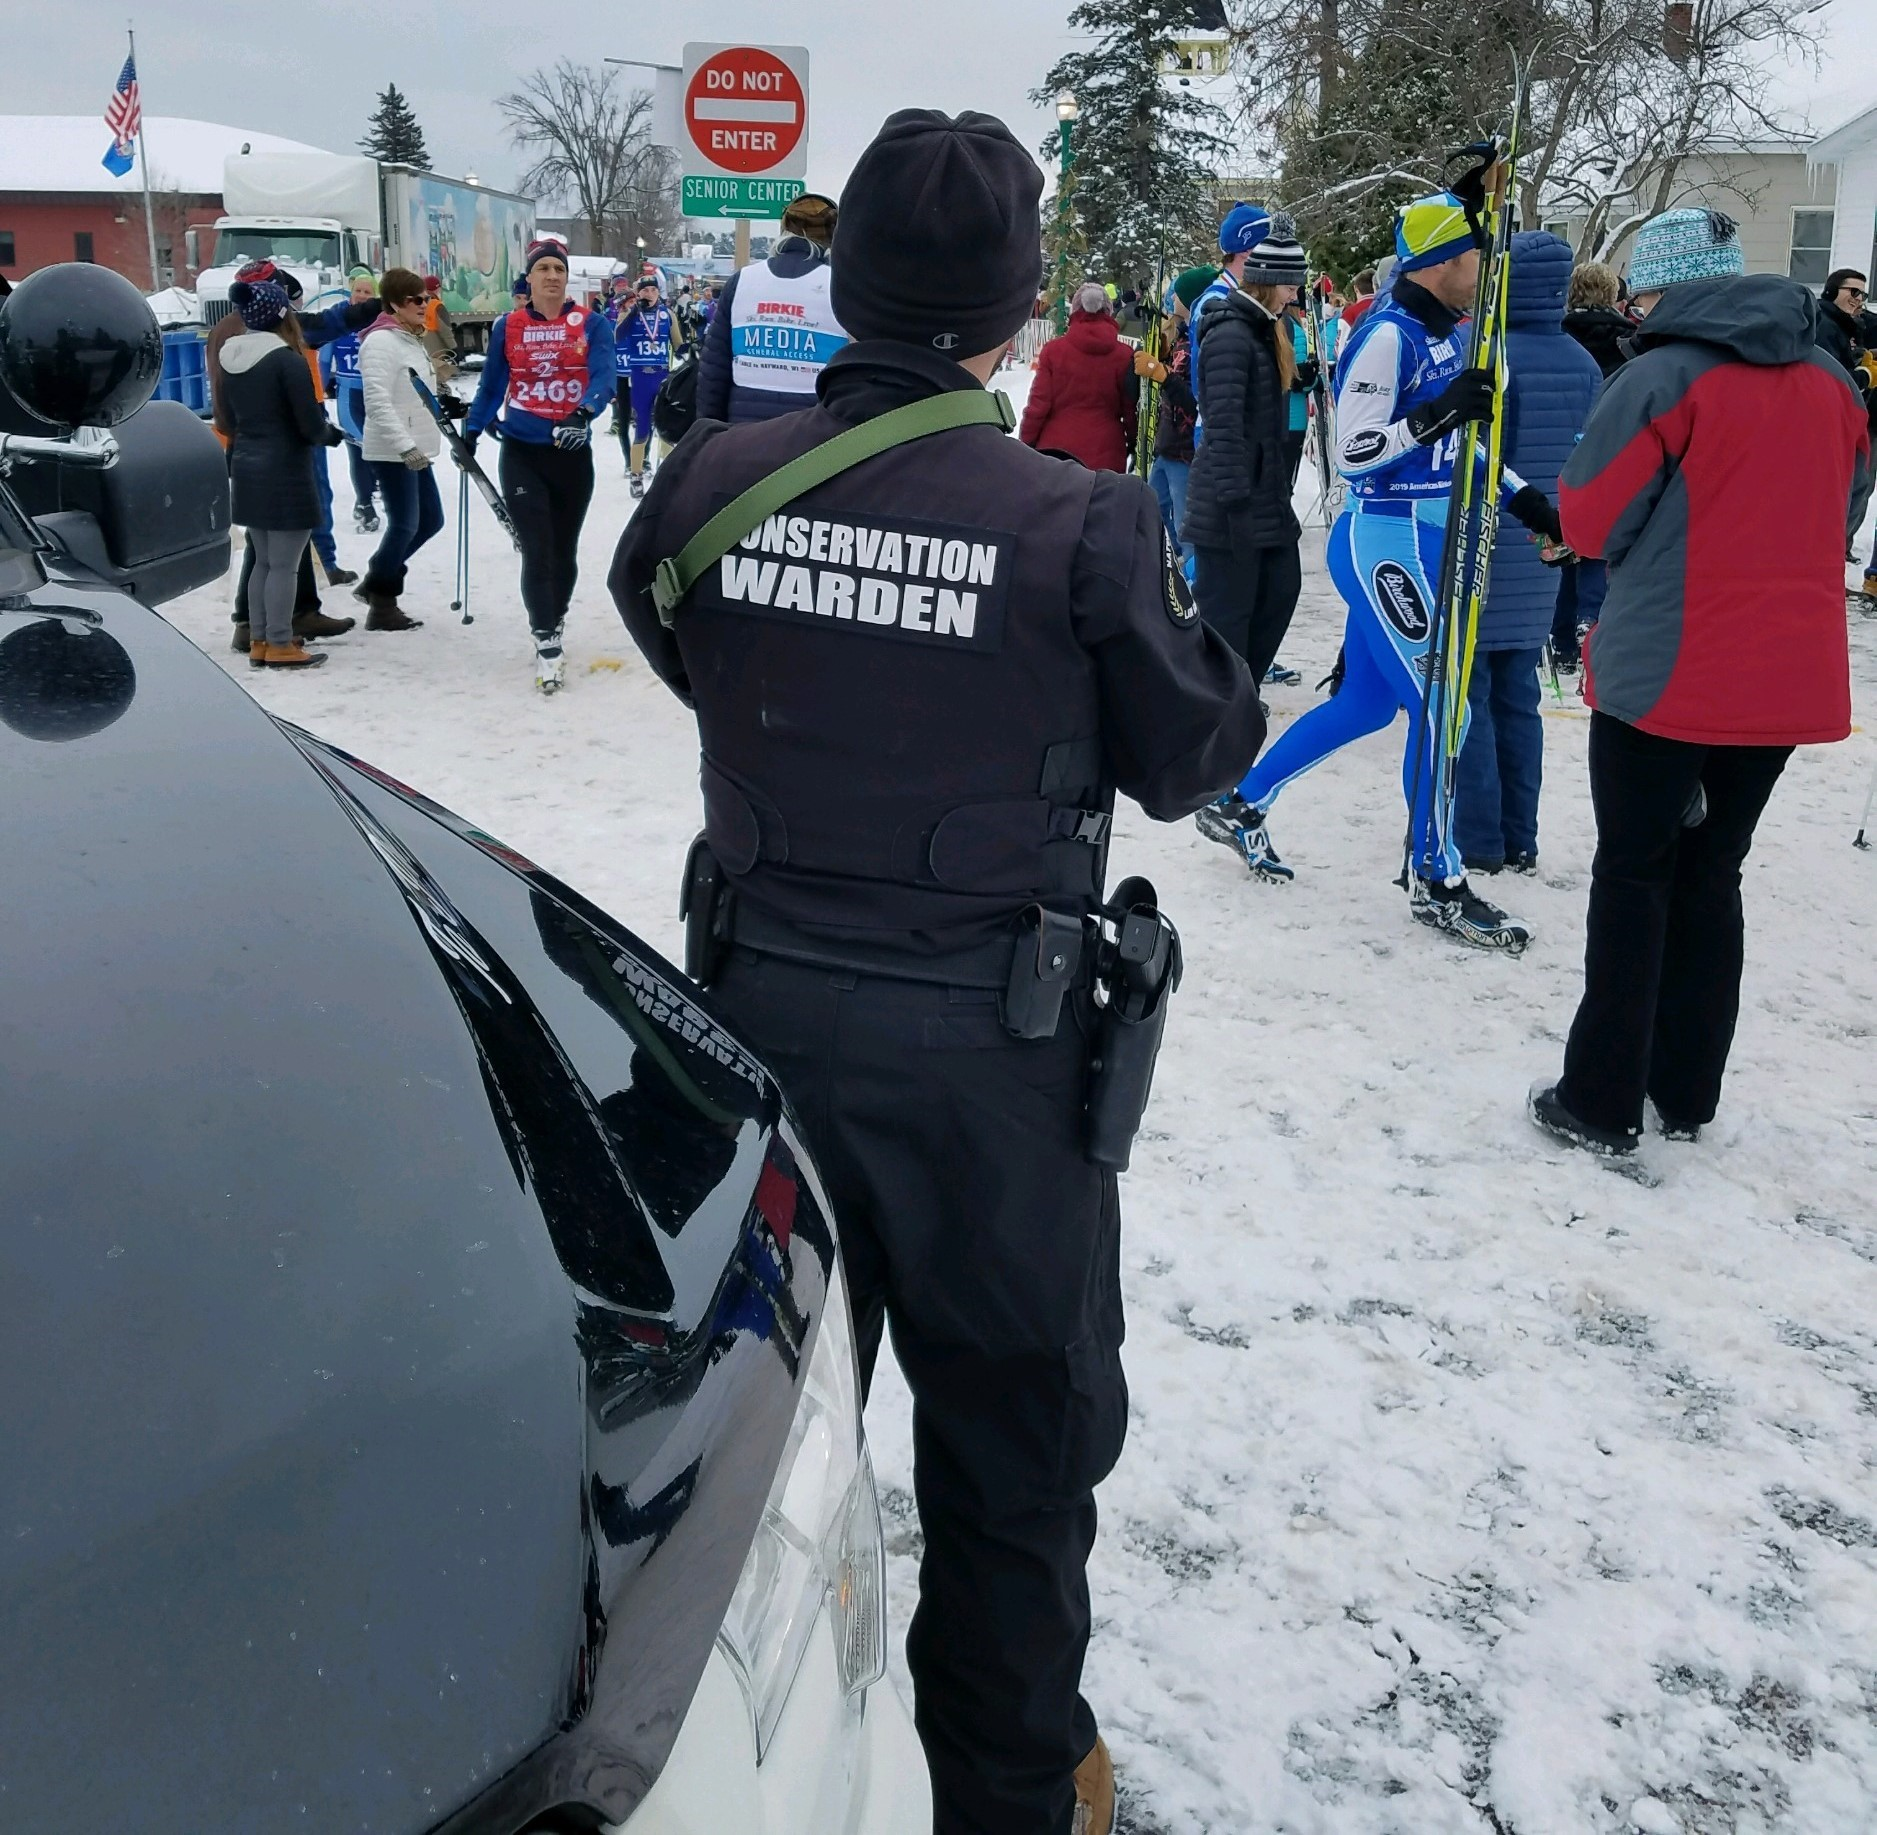 Warden Josh Loining providing security at the finish line of the Birkebeiner.